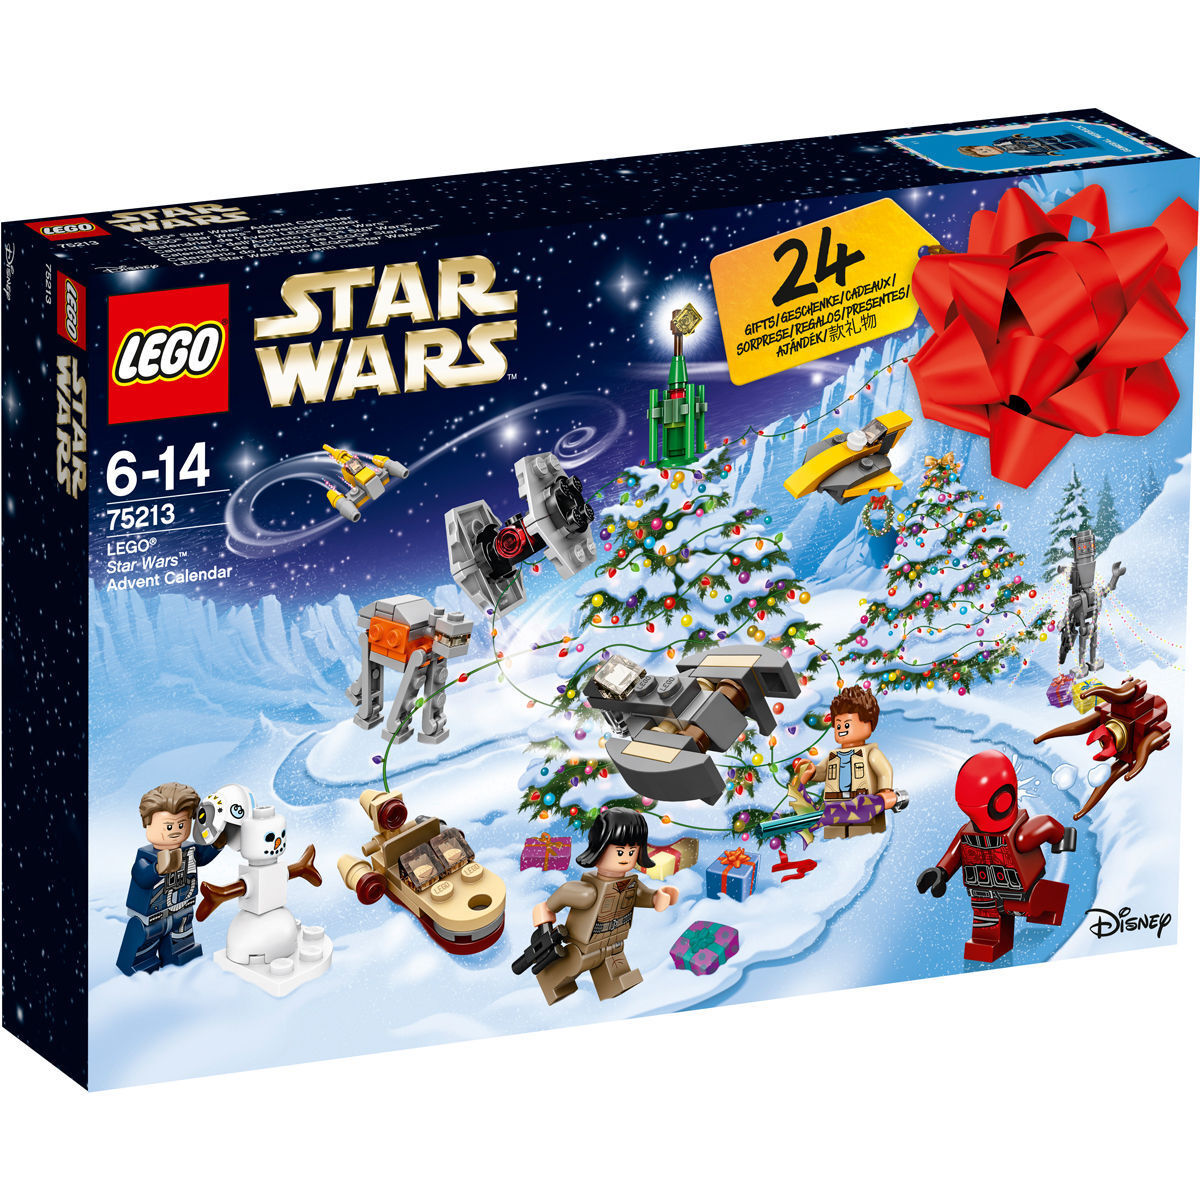 Adventskalender Bild Star Wars 75213 Adventskalender 2018